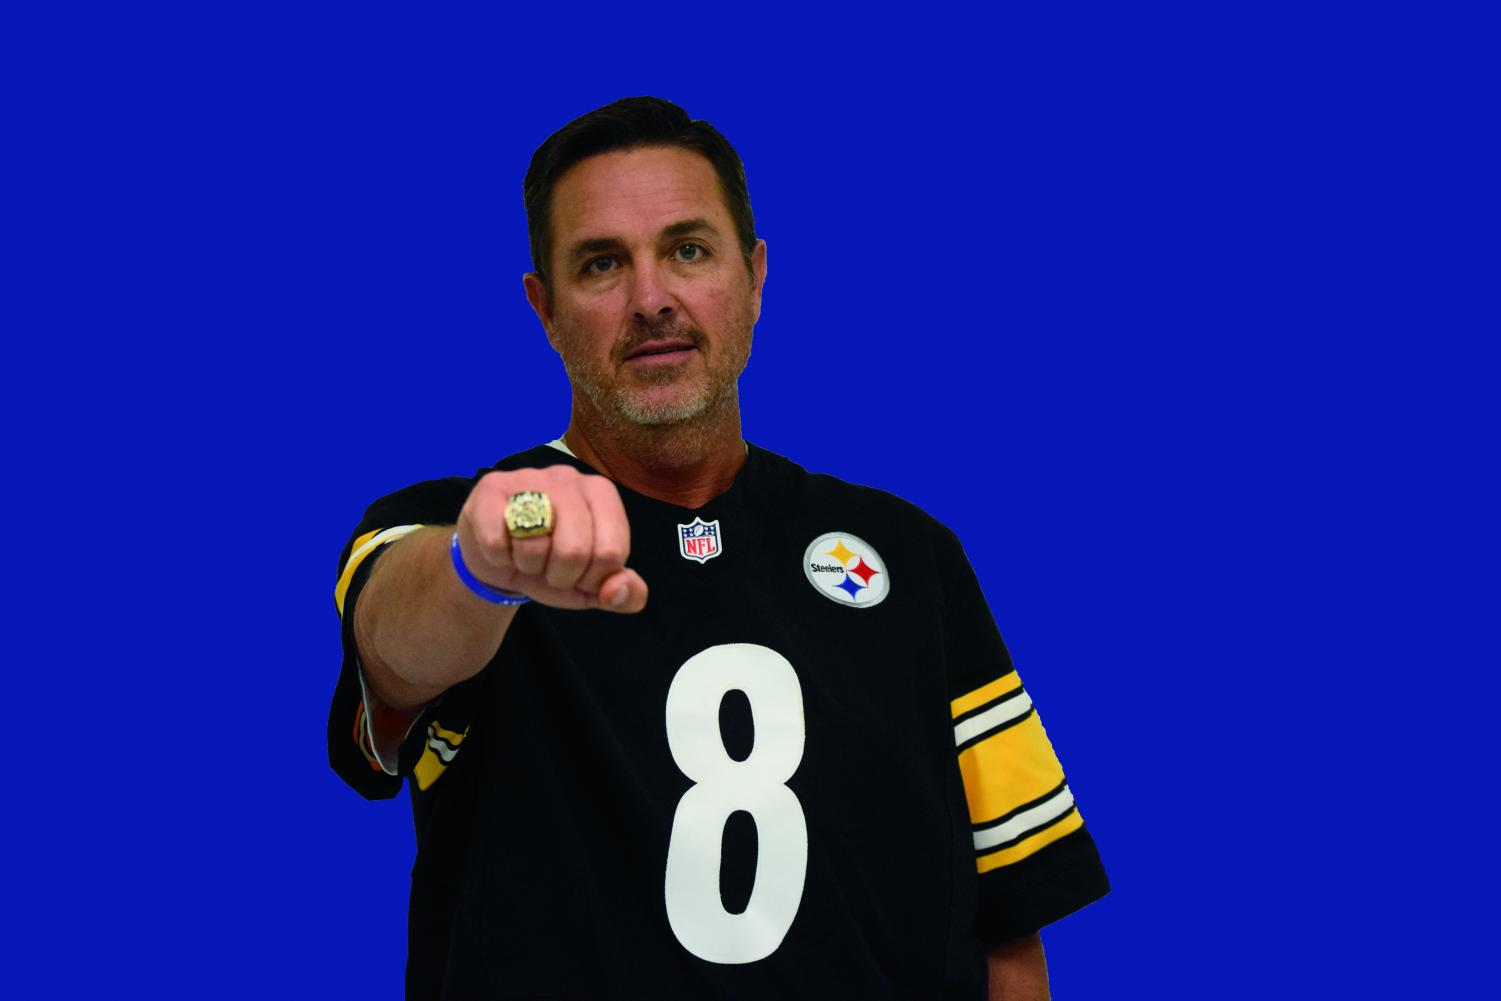 Pictured: Tommy Maddox wearing his Super Bowl ring and Steelers team jersey  Photo by: Faith Myers